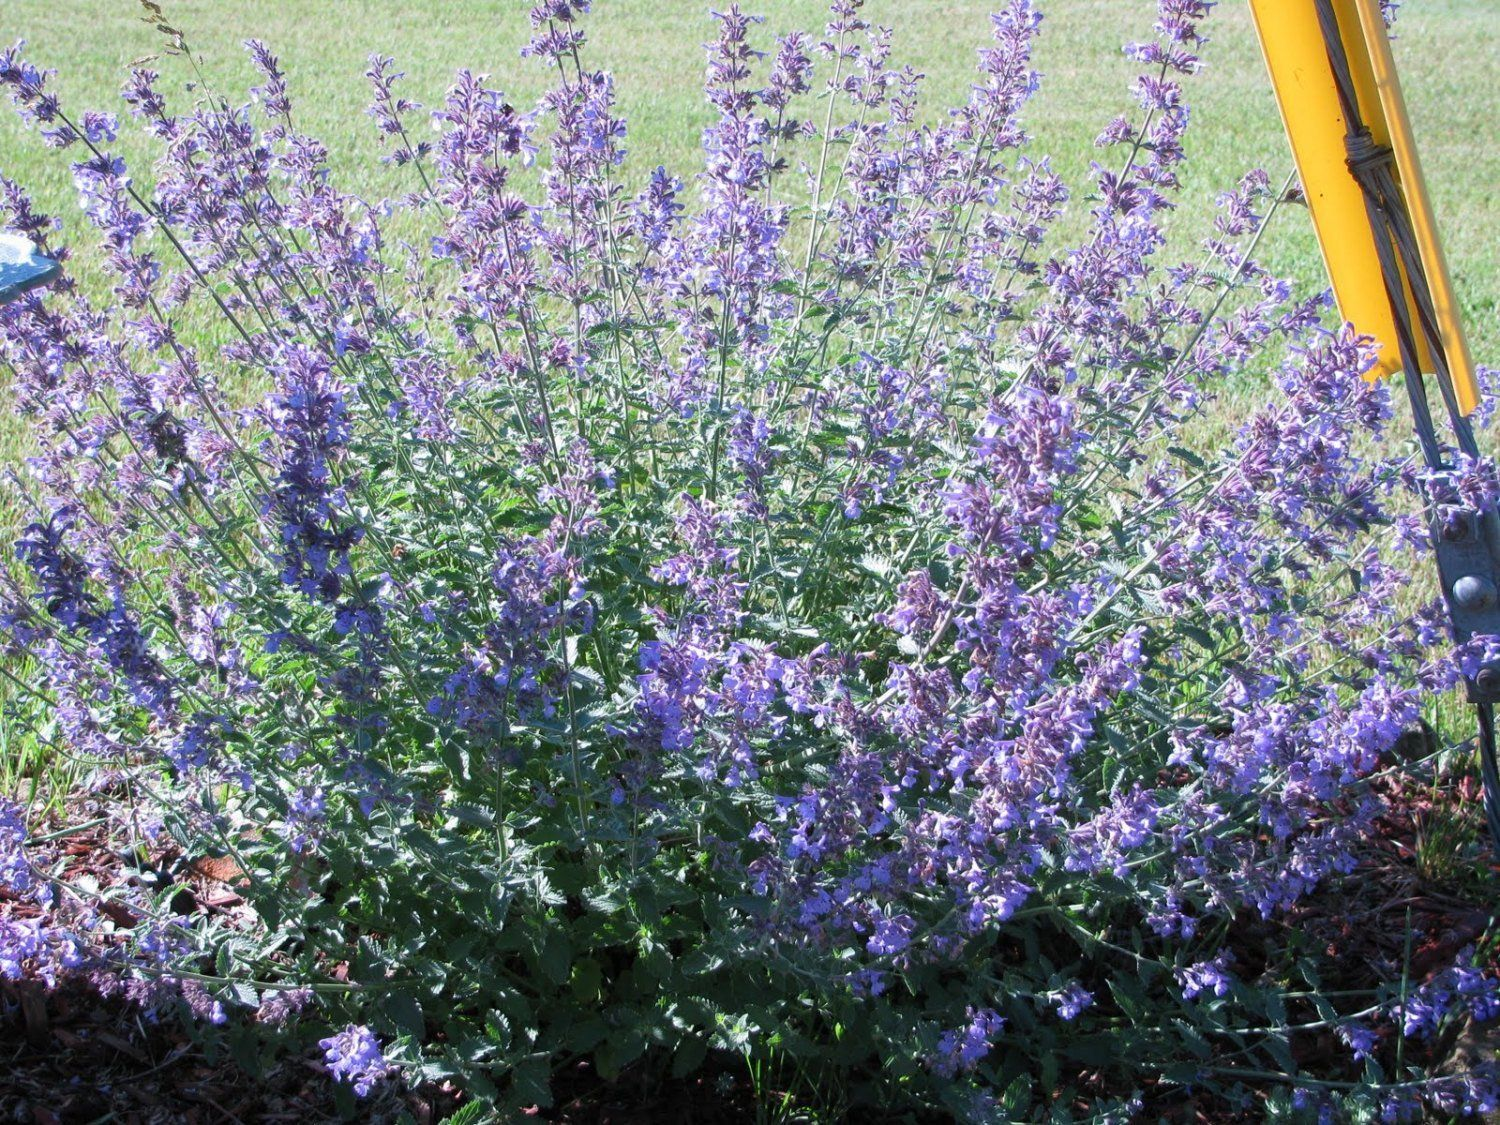 Catnip (Nepeta Cataria) Herb Seeds,Both the flowers and